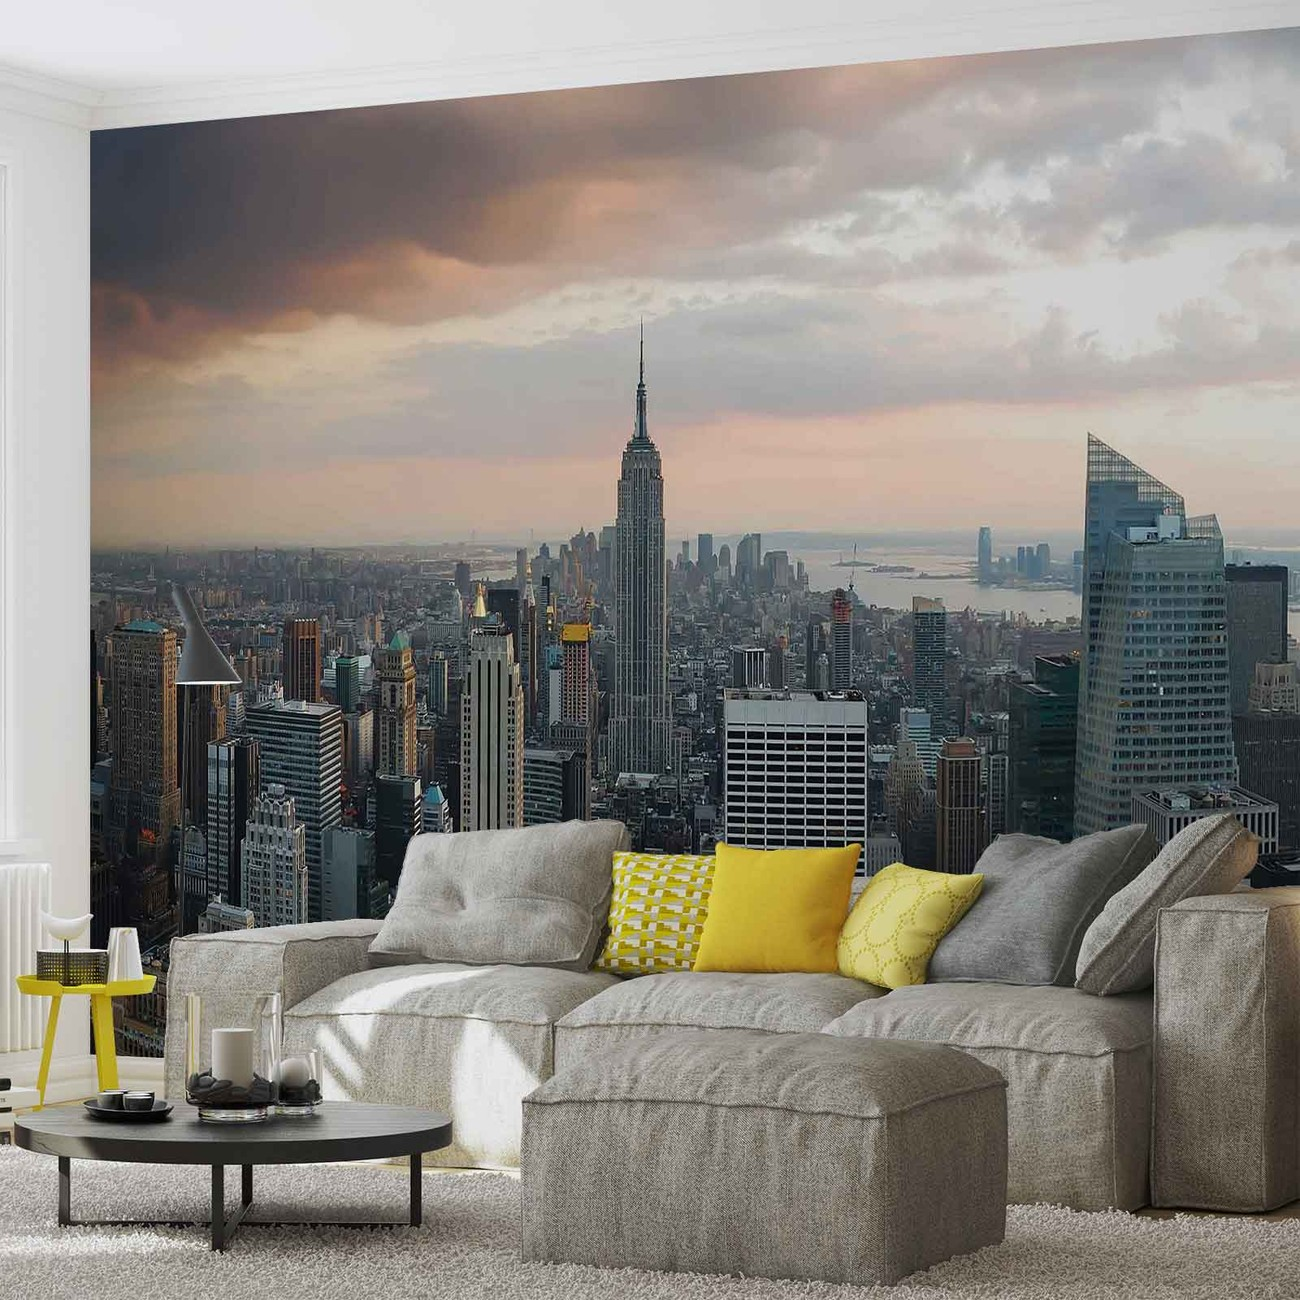 New york city empire state building wall paper mural buy for Acheter poster mural new york